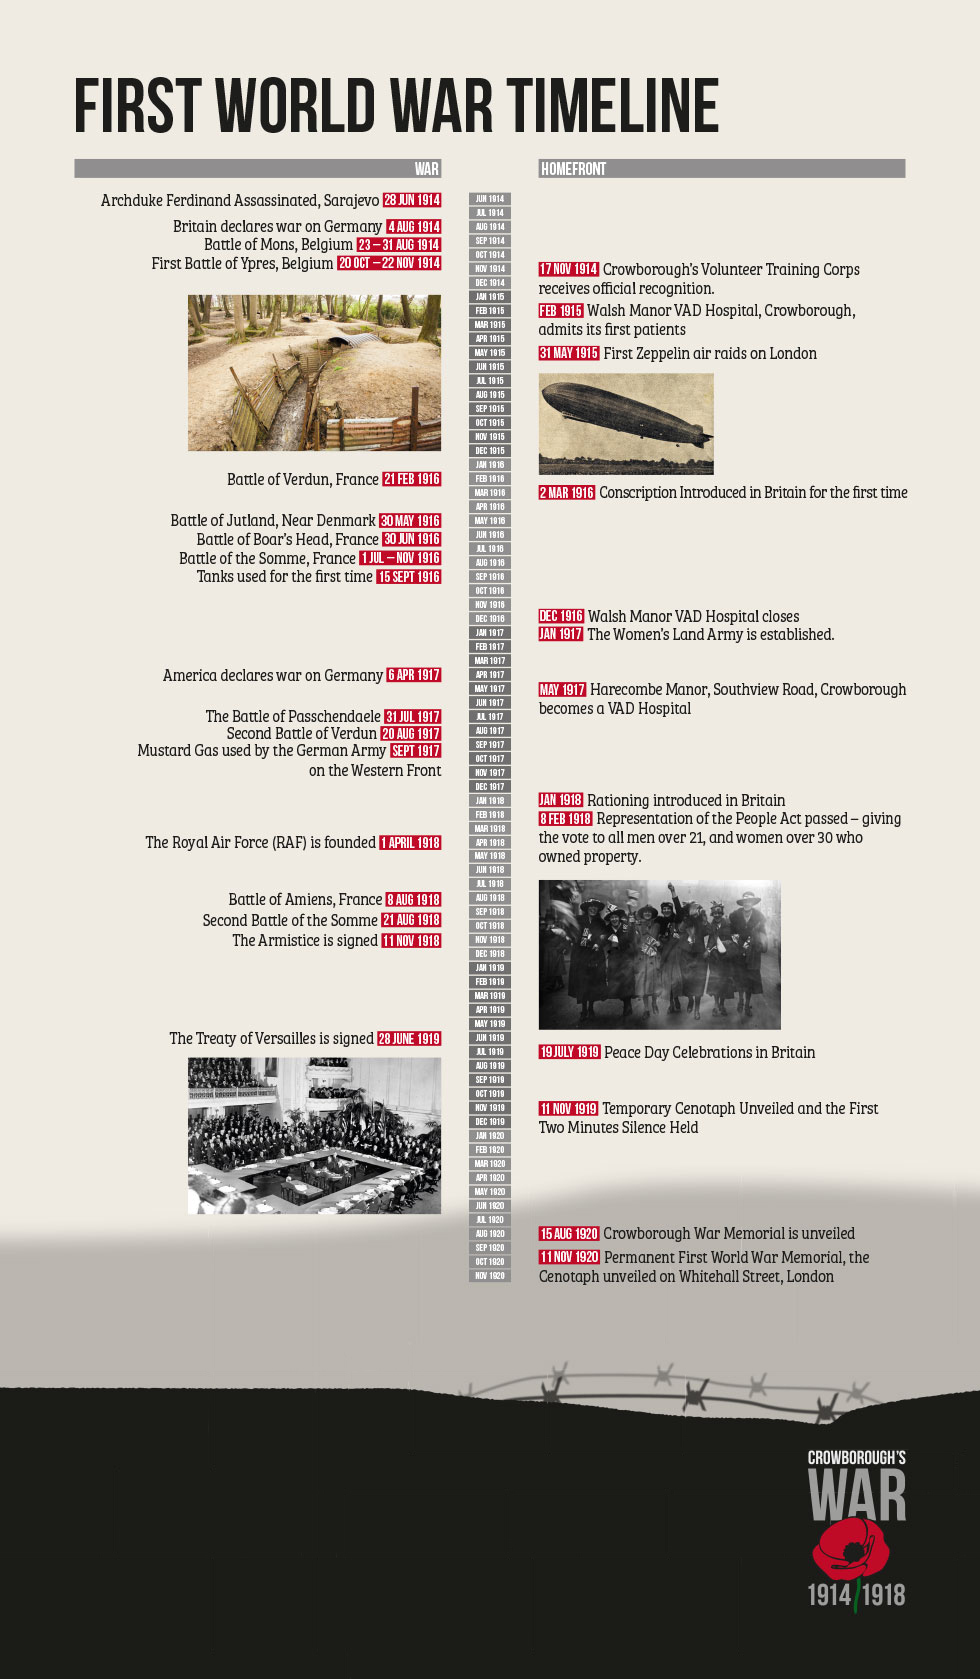 Crowborough's War Exhibition Timeline panel